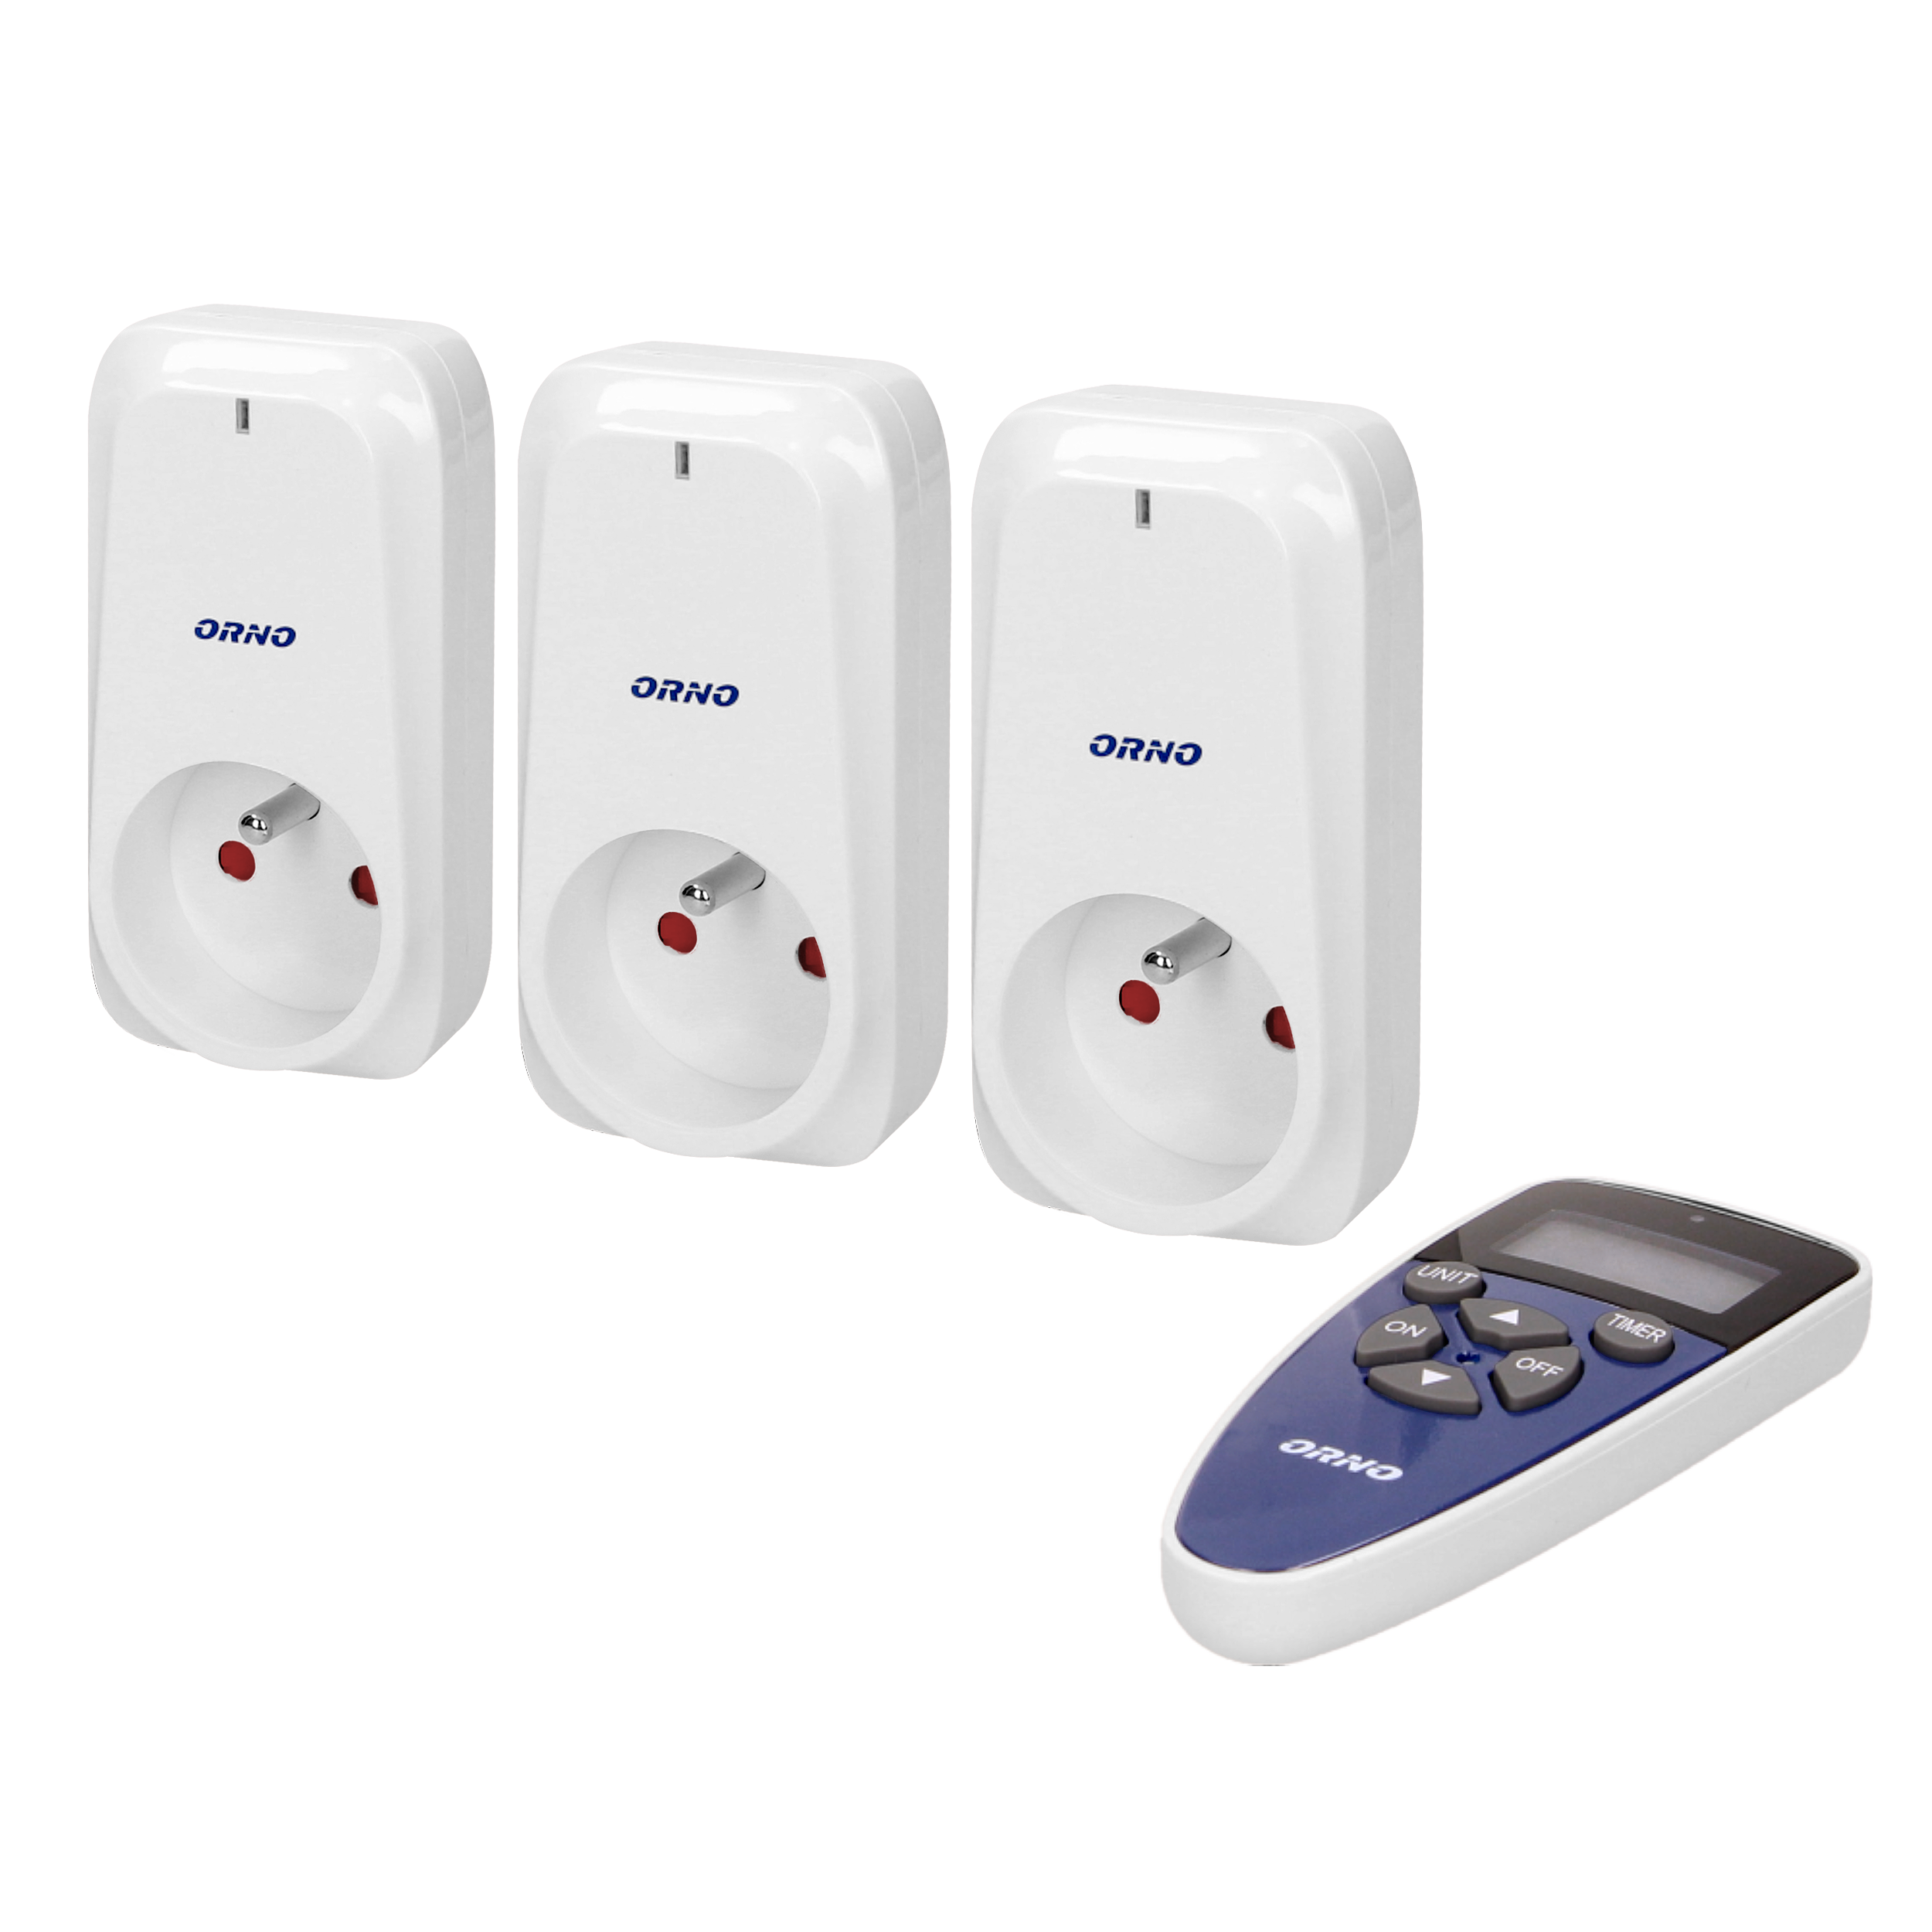 Wireless sockets with remote control and timer function 3+1